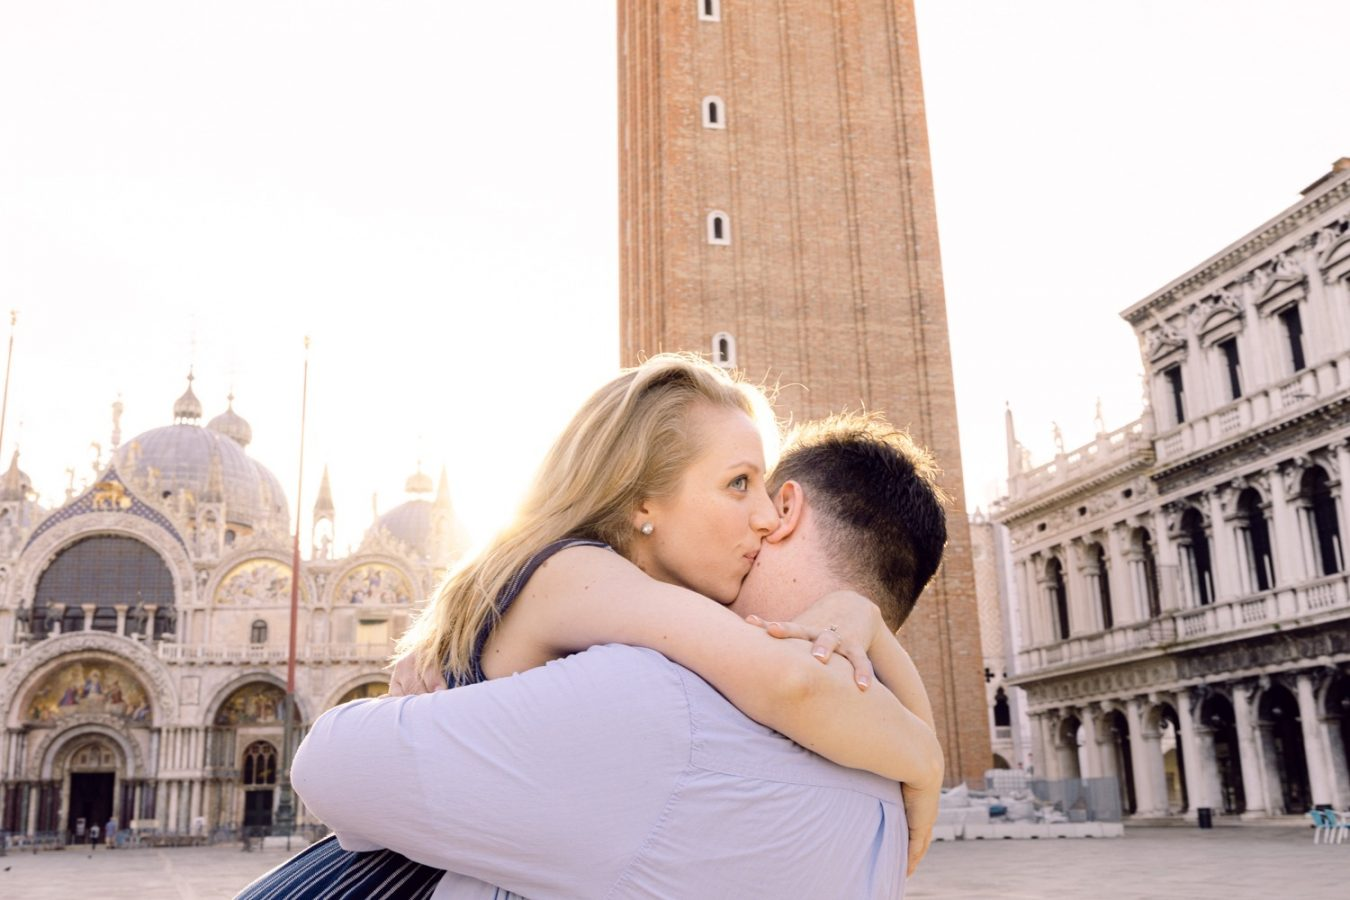 Piazza San Marco photography Romantic honeymoon photoshoot in Venice spring sunrise couple photography